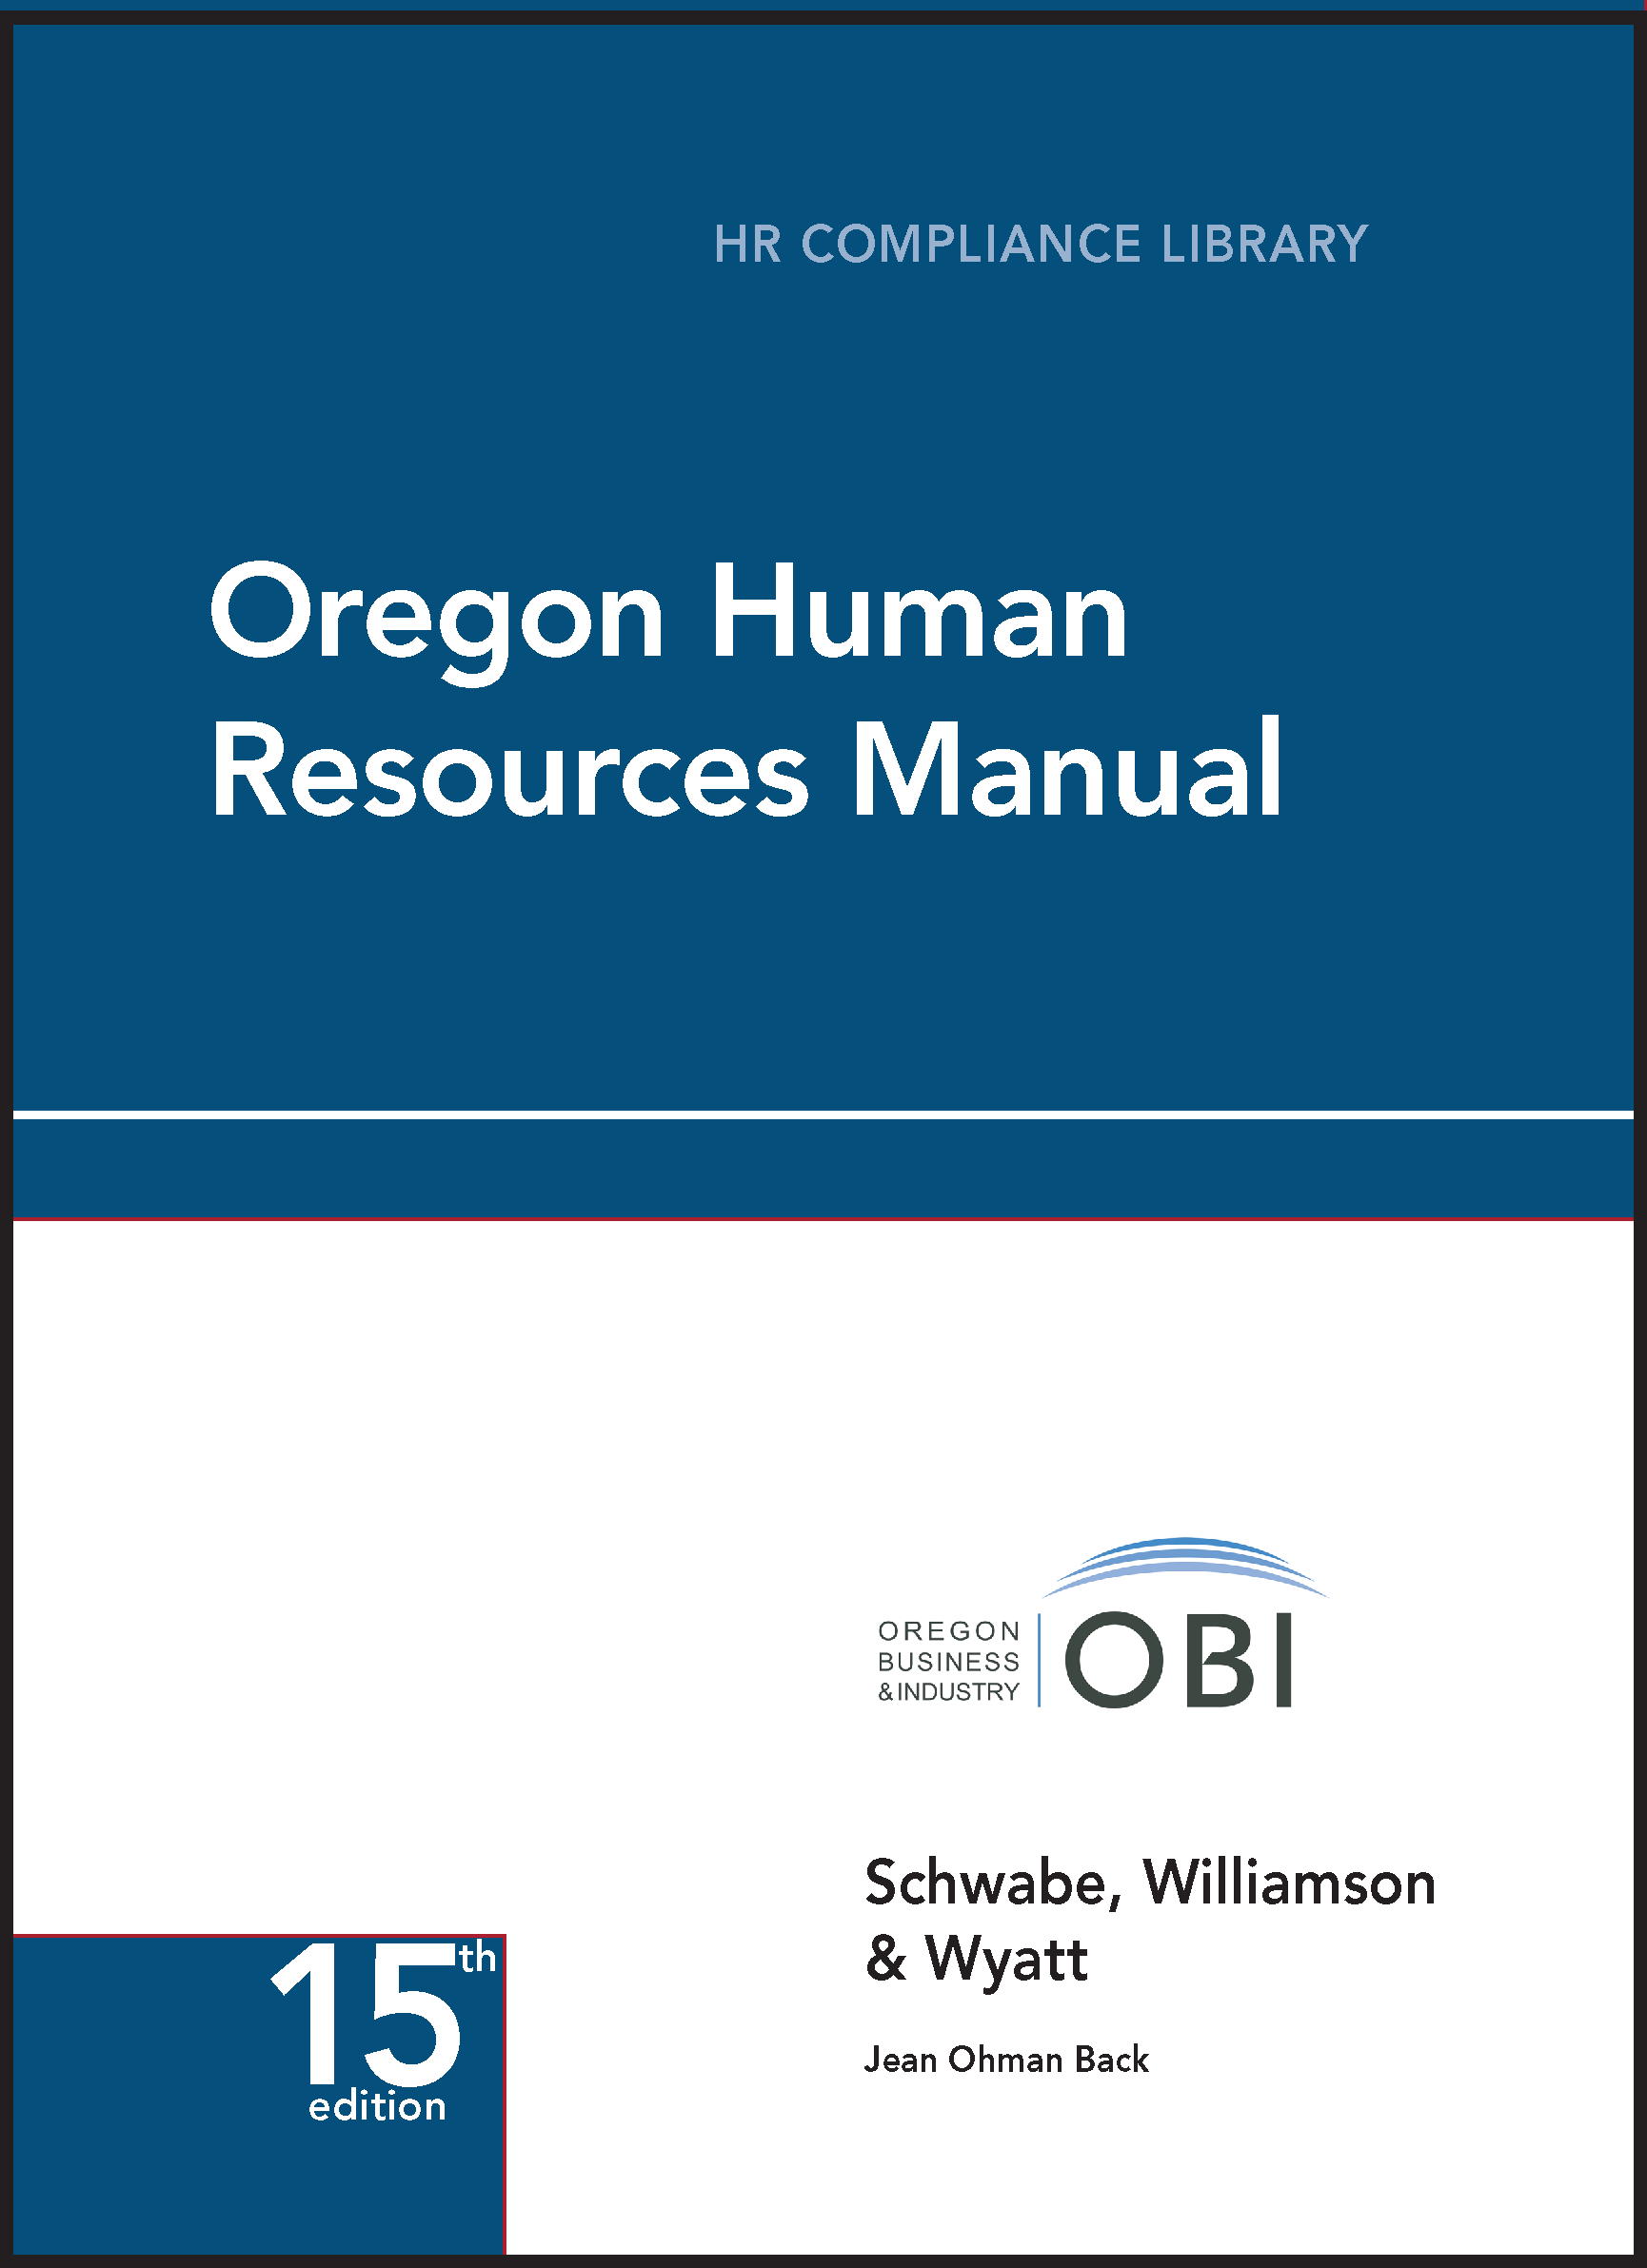 Oregon Human Resources Manual employment law image